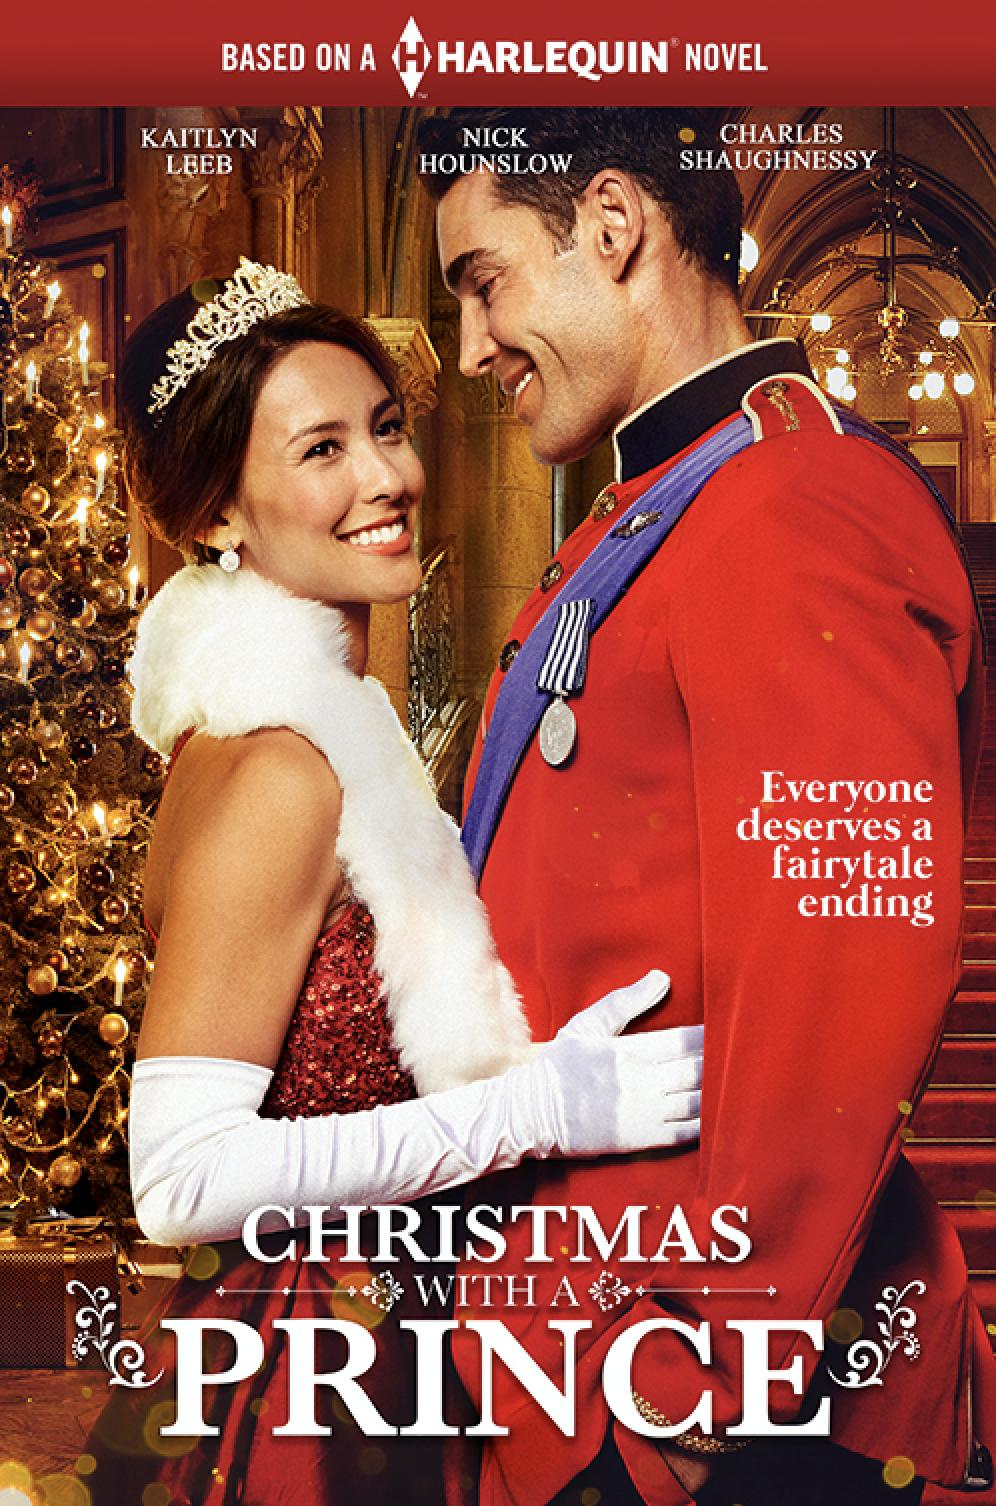 Christmas with a prince movie poster